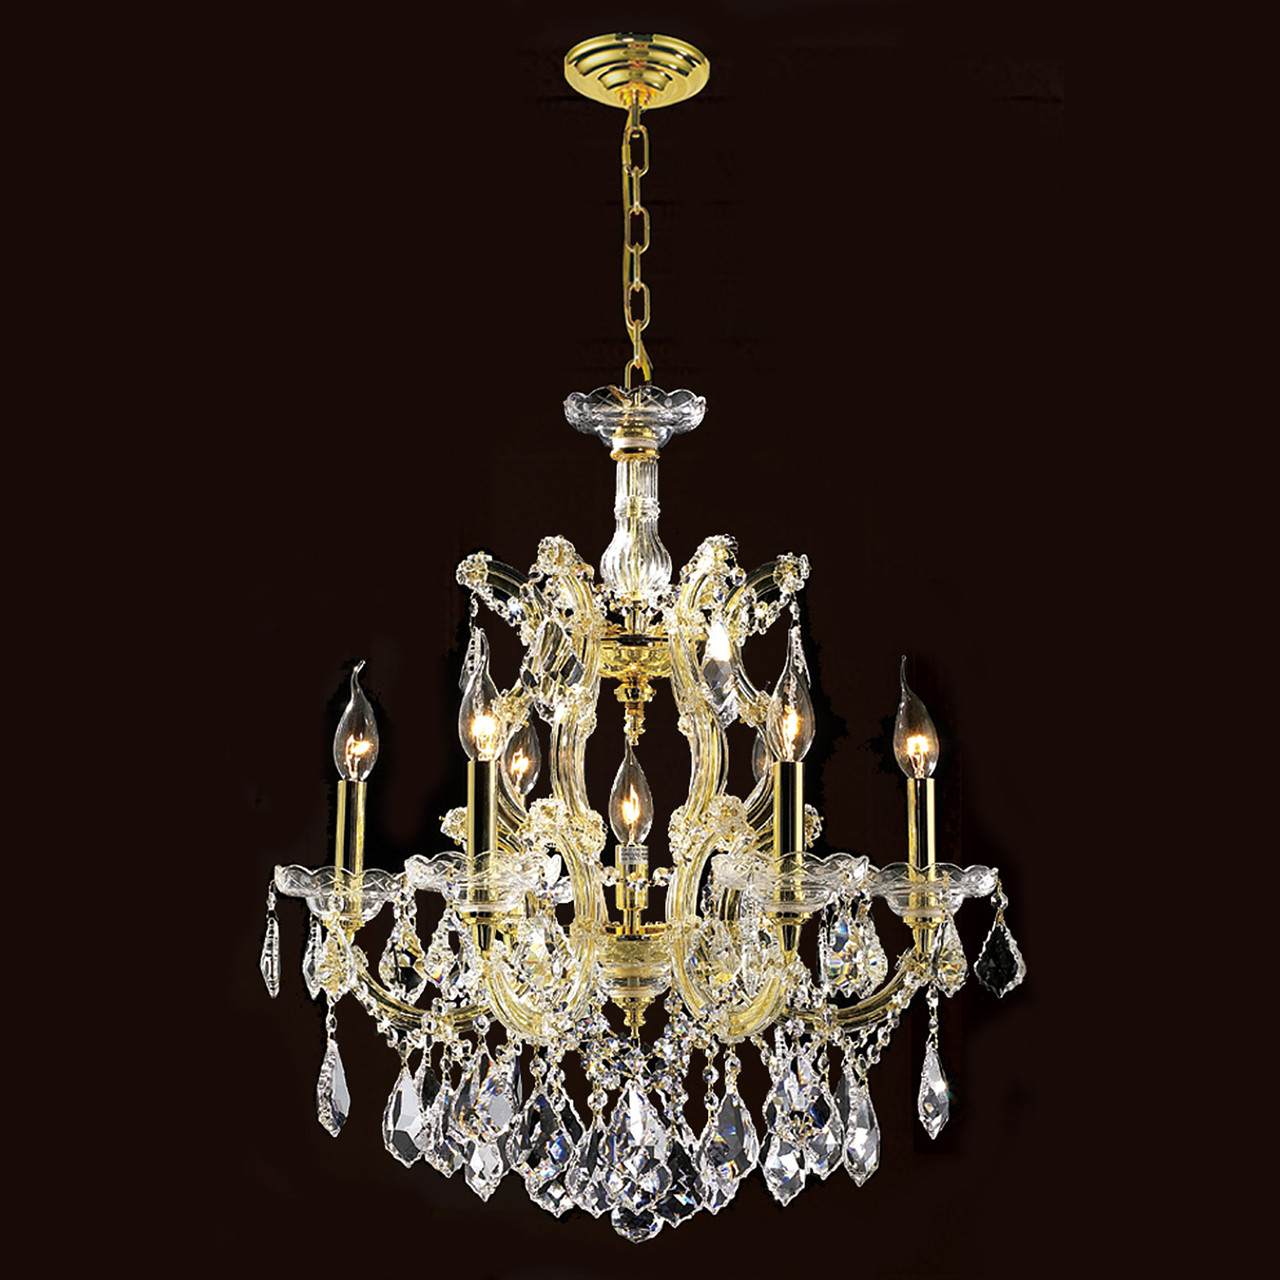 6 Light Maria Theresa Crystal Chandelier 2800D20G